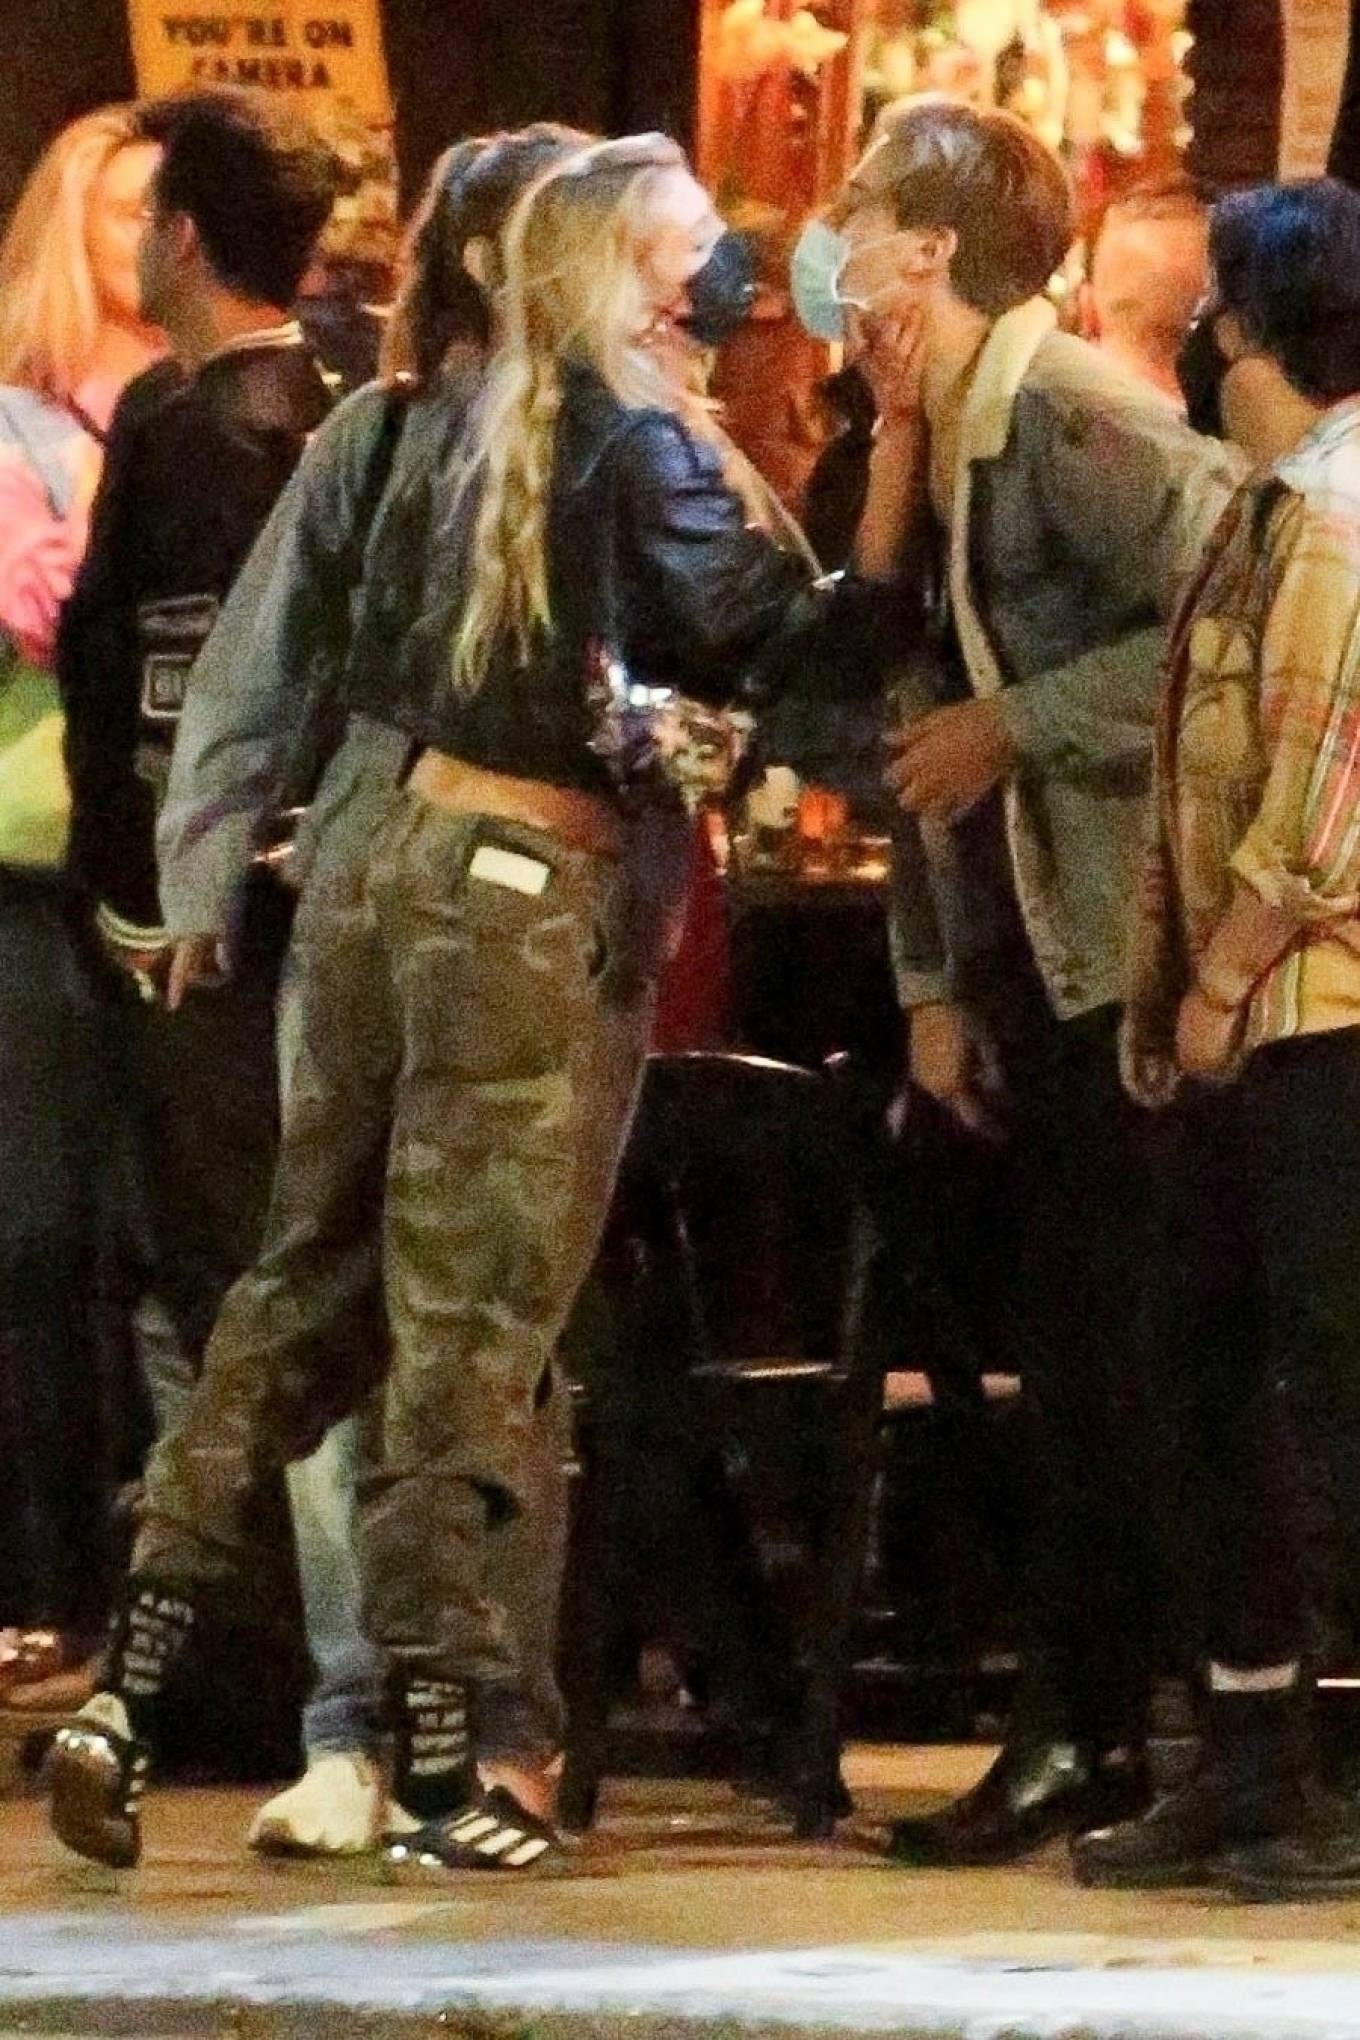 Barbara Palvin 2020 : Dylan Sprouse and Barbara Palvin with KJ Apa and Stella Maxwell – Night out in Silverlake -06